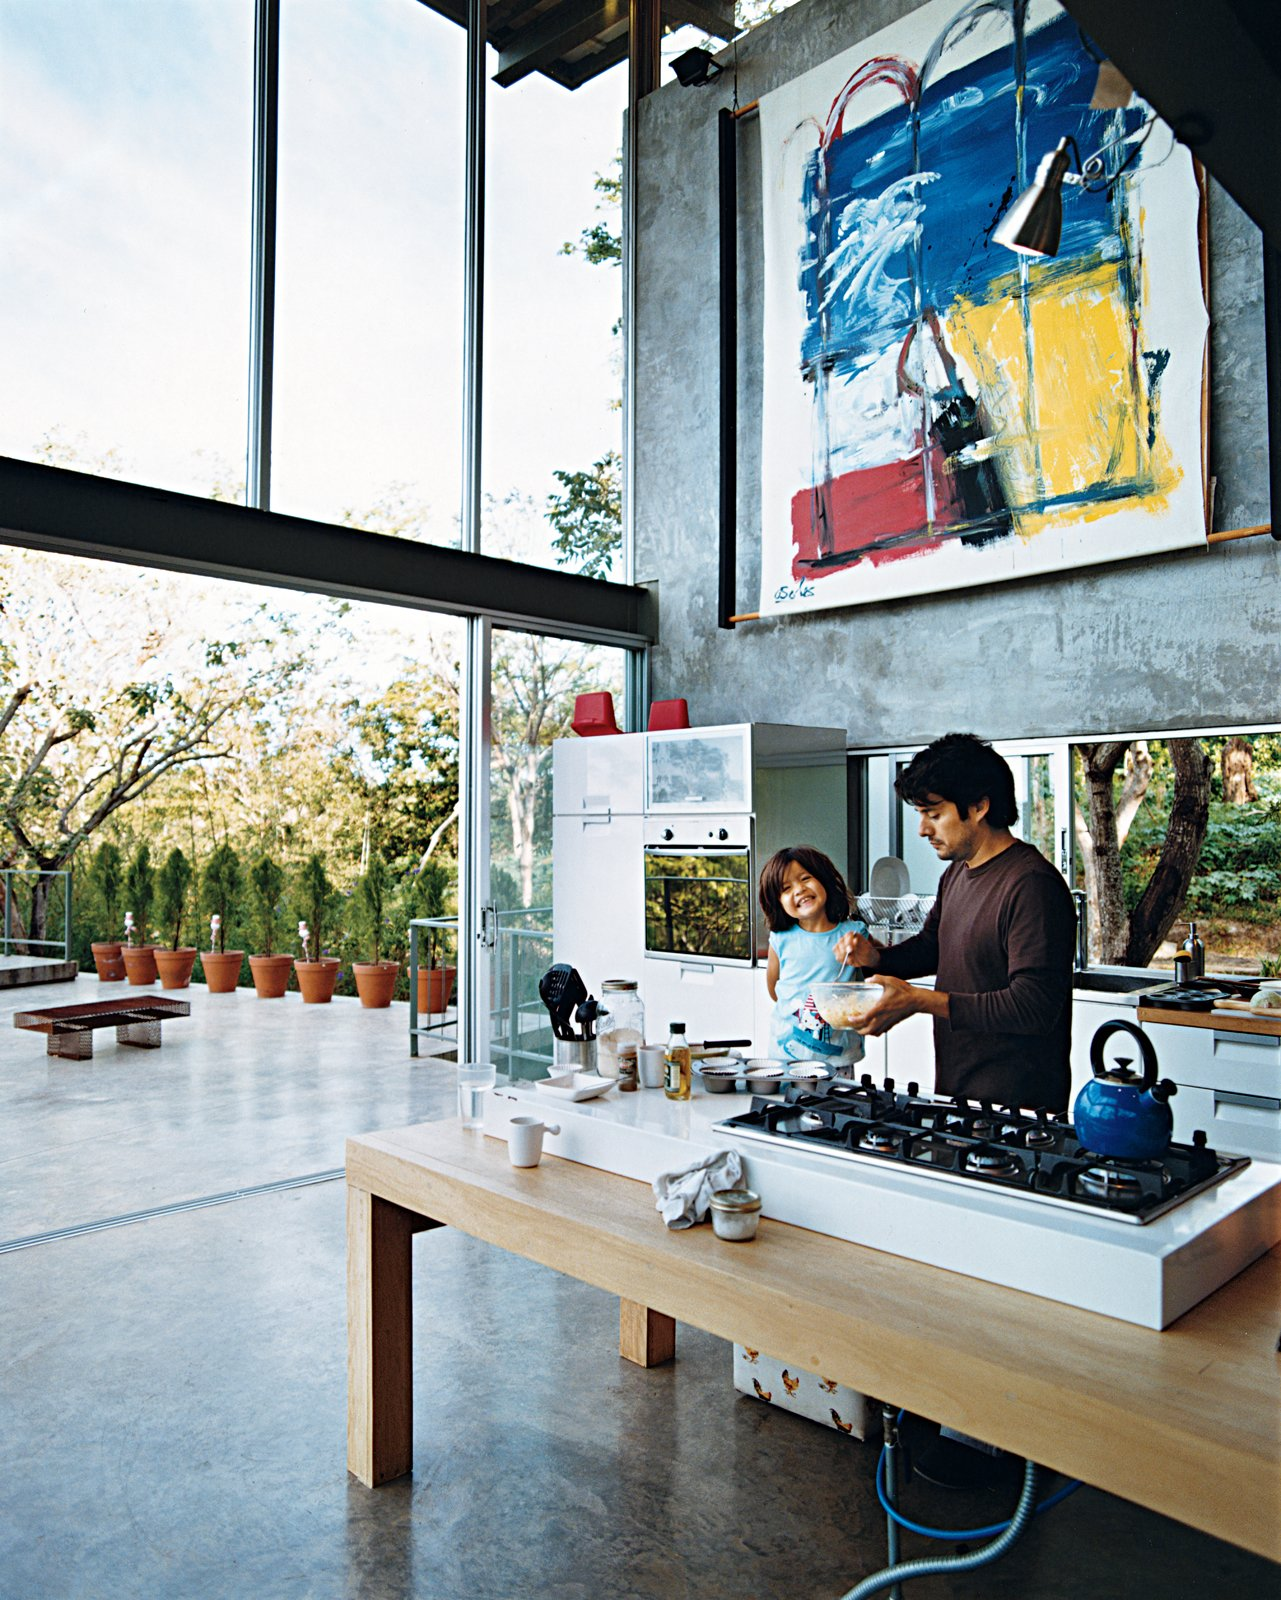 Kitchen, Wood Counter, Concrete Floor, and White Cabinet José Roberto, who says his family is always cooking something, prepares a snack with Jimena on the Ariston gas cooktop installed on the custom table.  Photos from Welcome to the Jungle